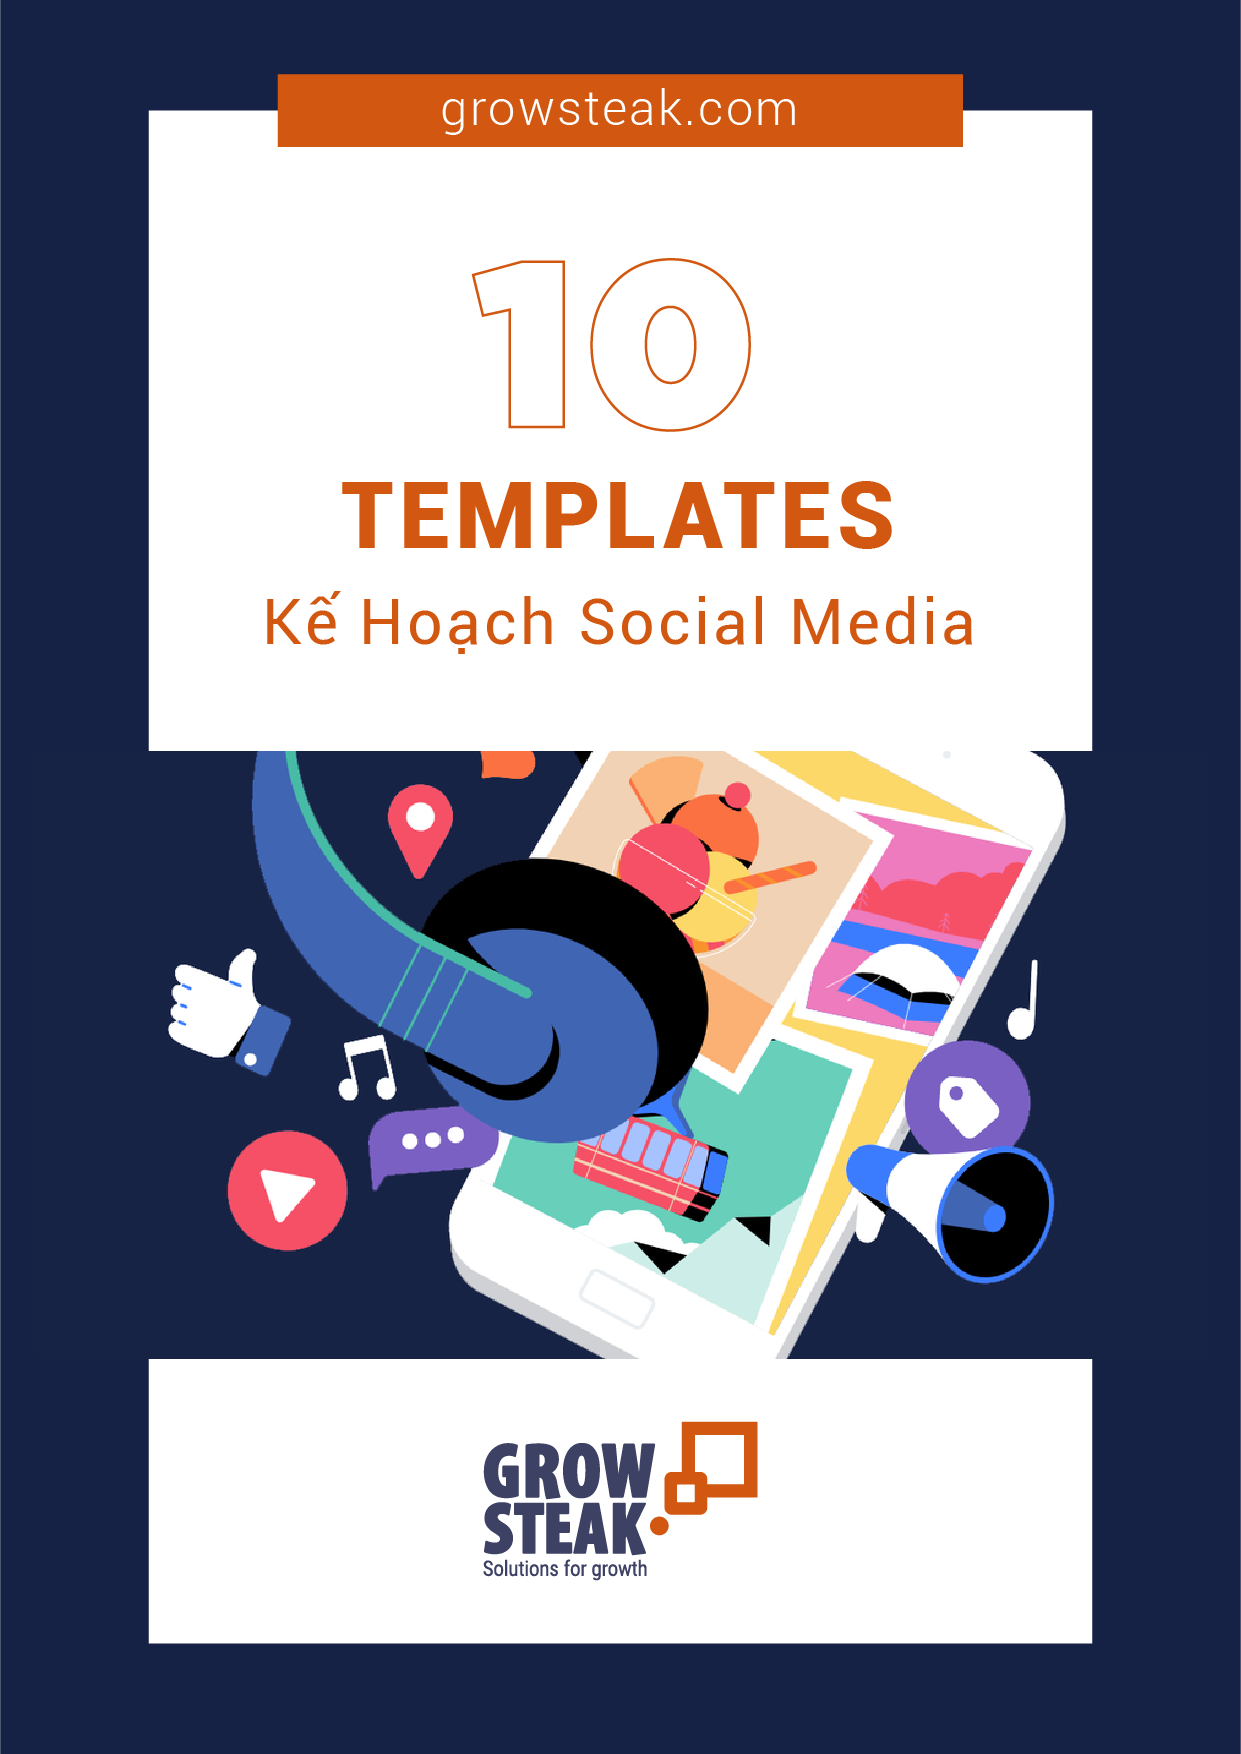 [COVER] 10 template kế hoạch social